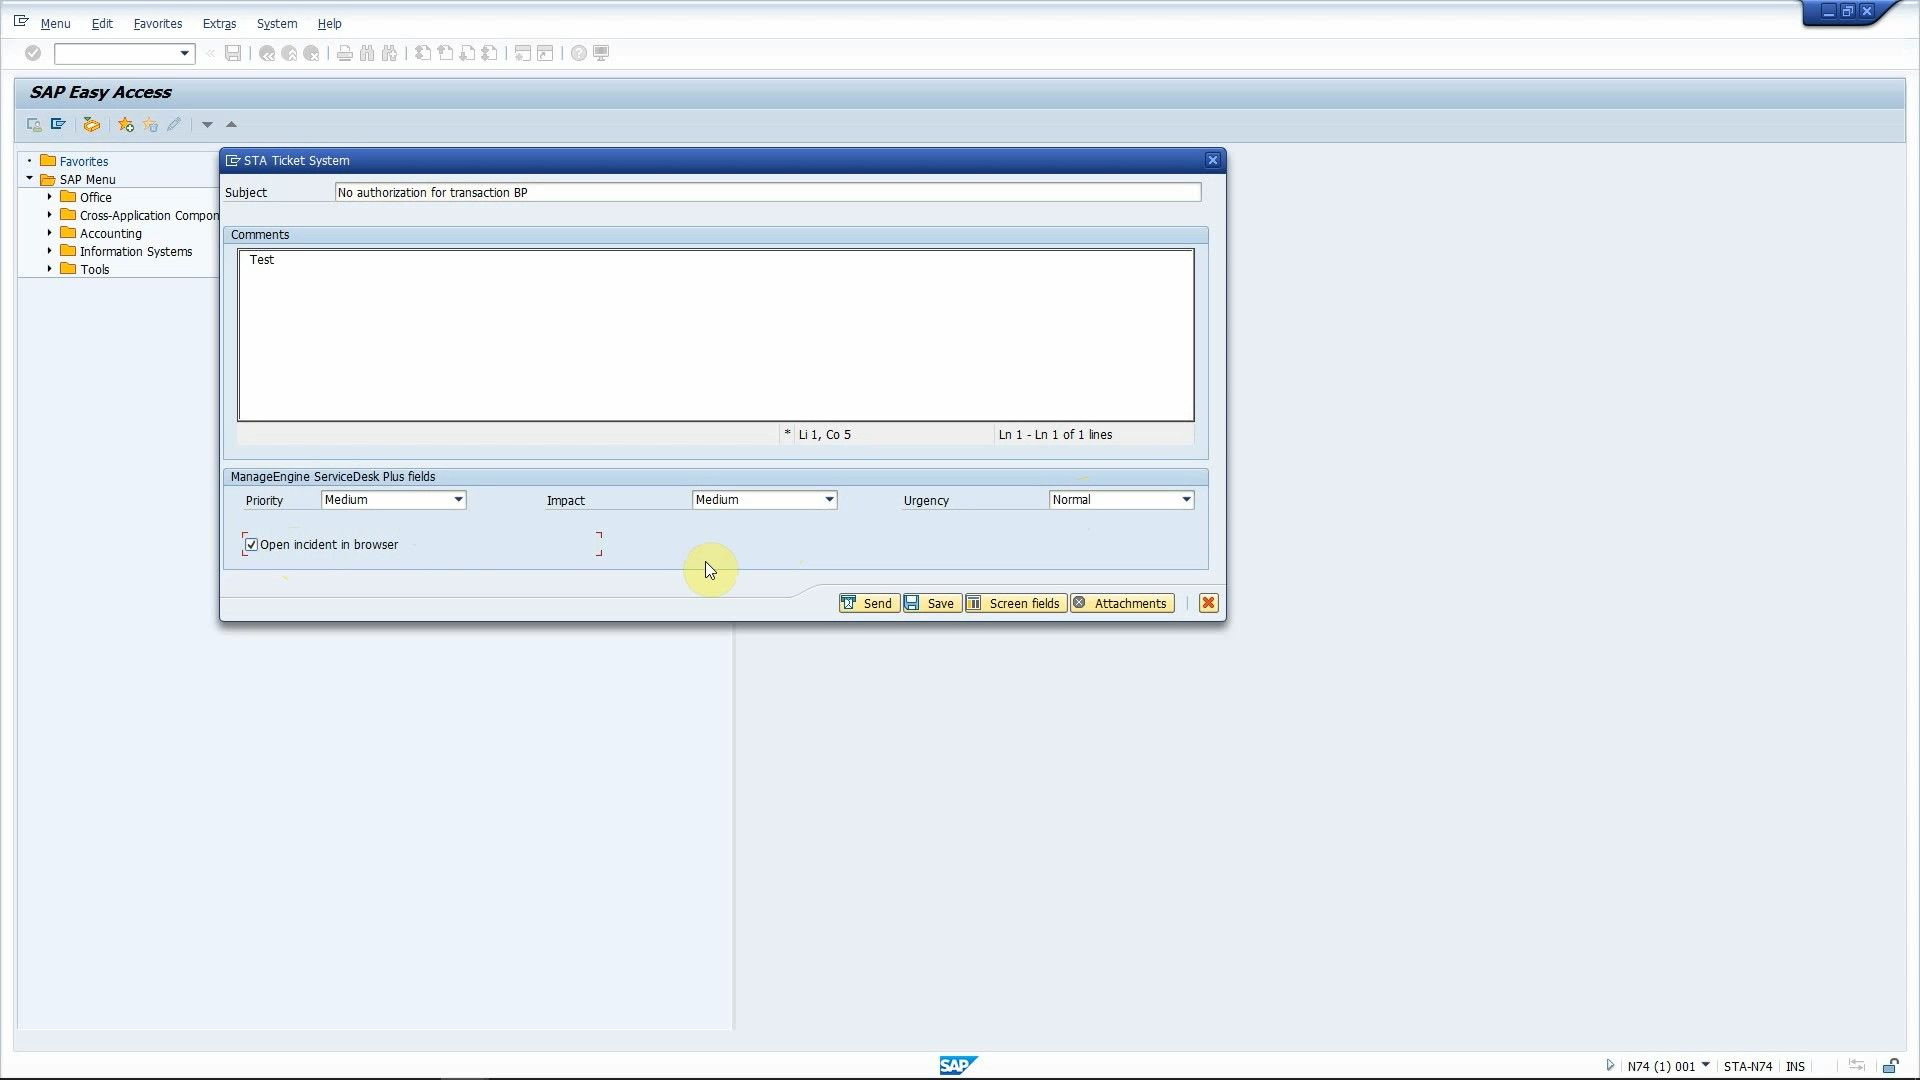 Integrate ManageEngine ServiceDesk Plus with SAP